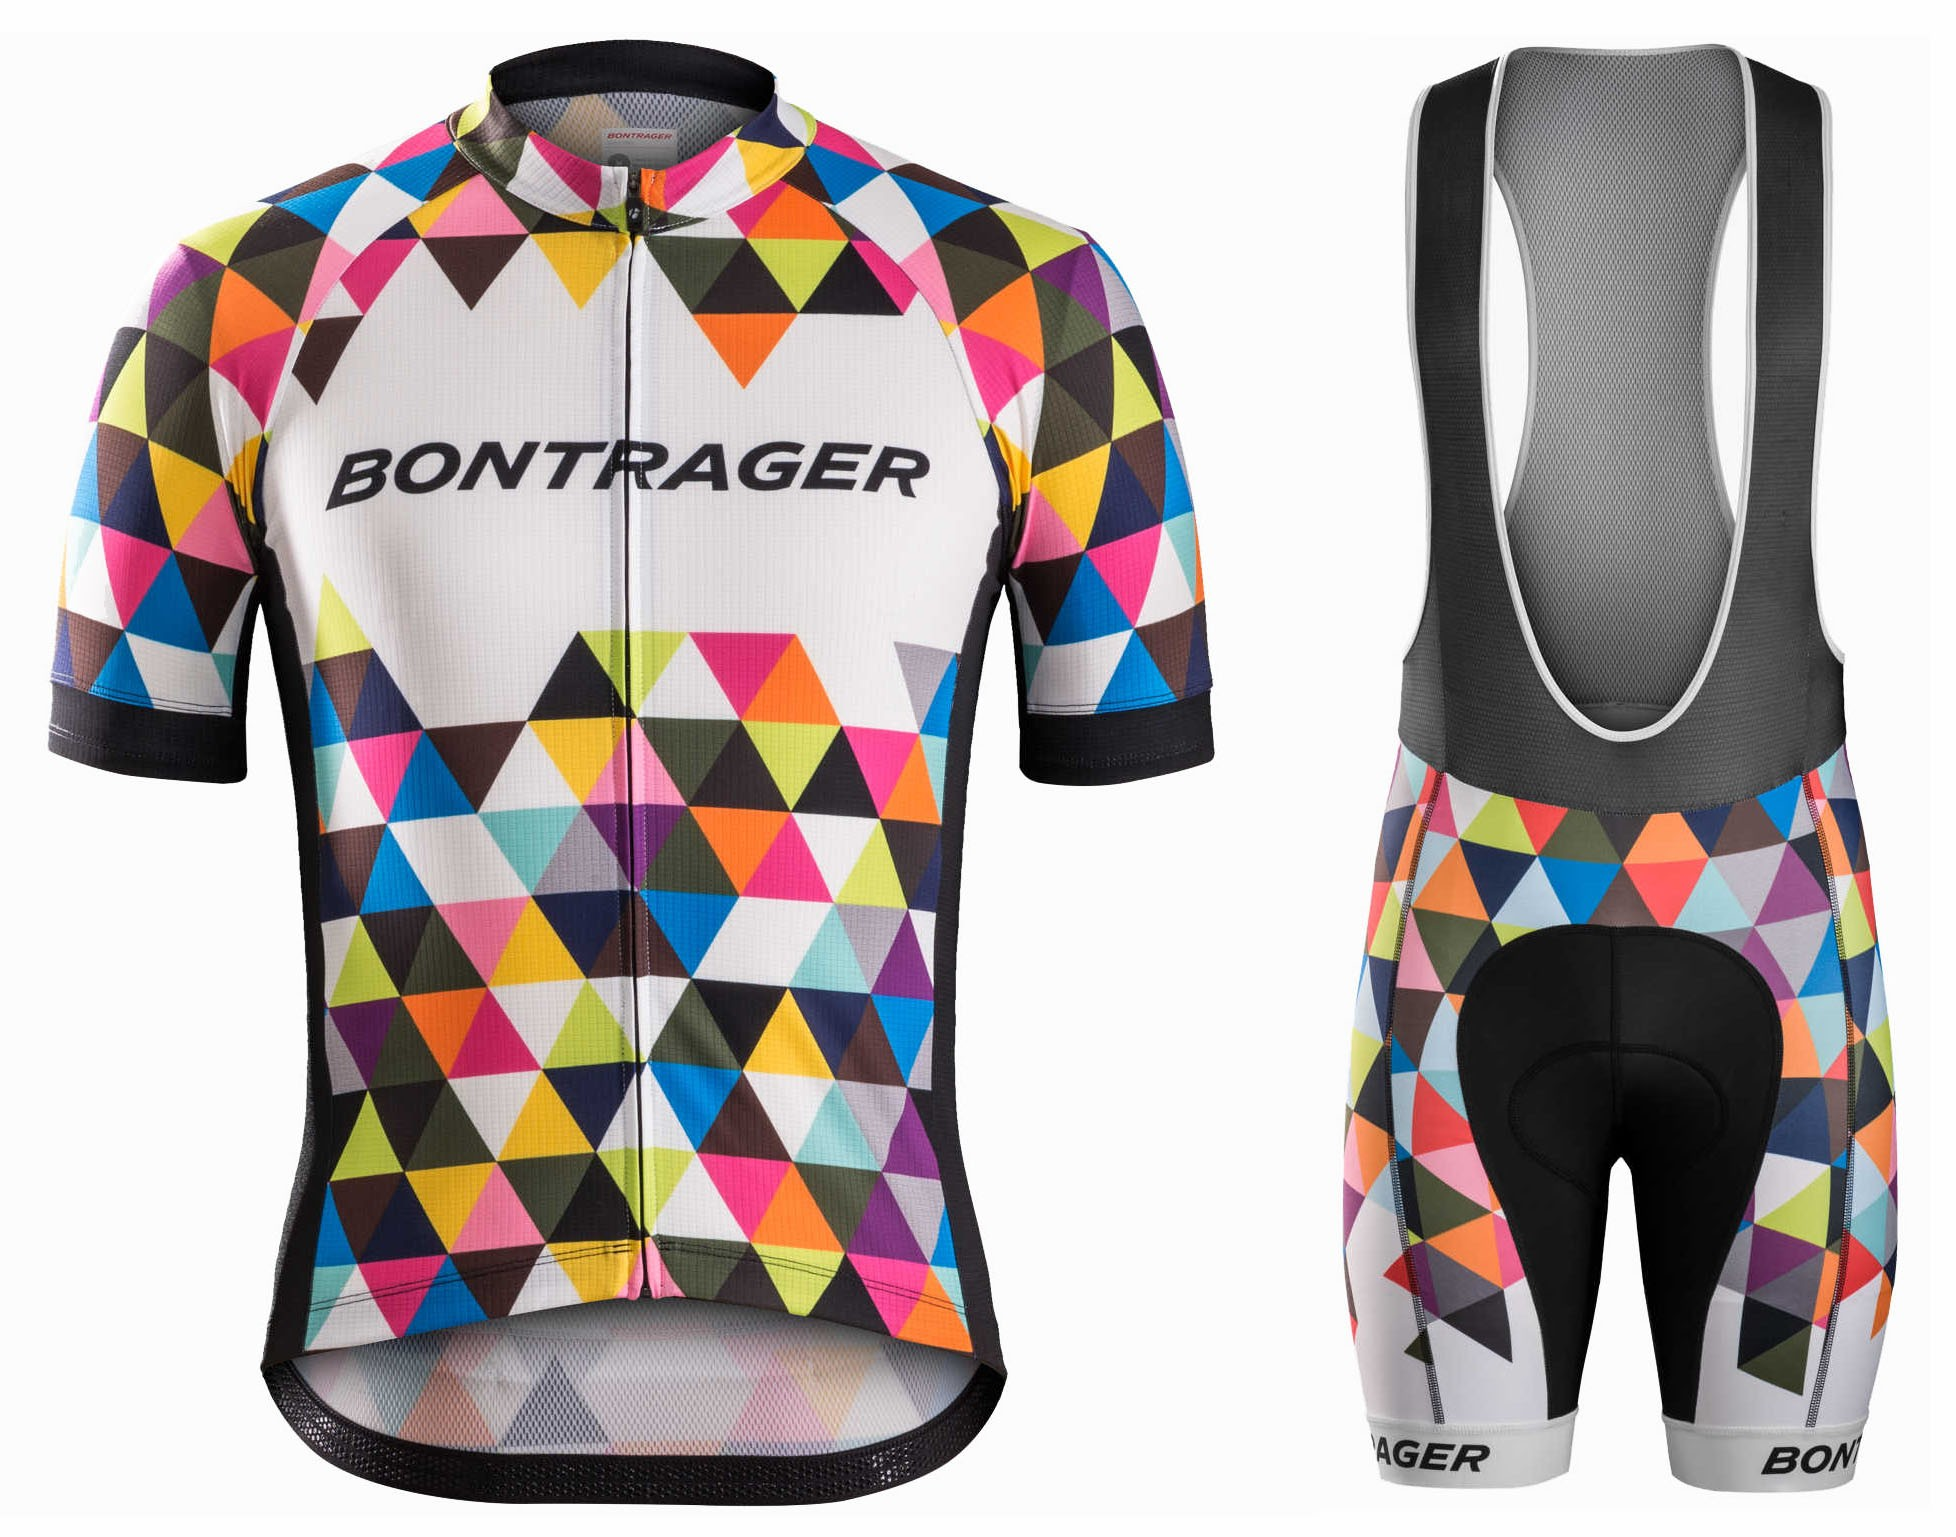 2016 Bontrager Specter Colorful Cycling Jersey And Bib Shorts Set d305f87ea